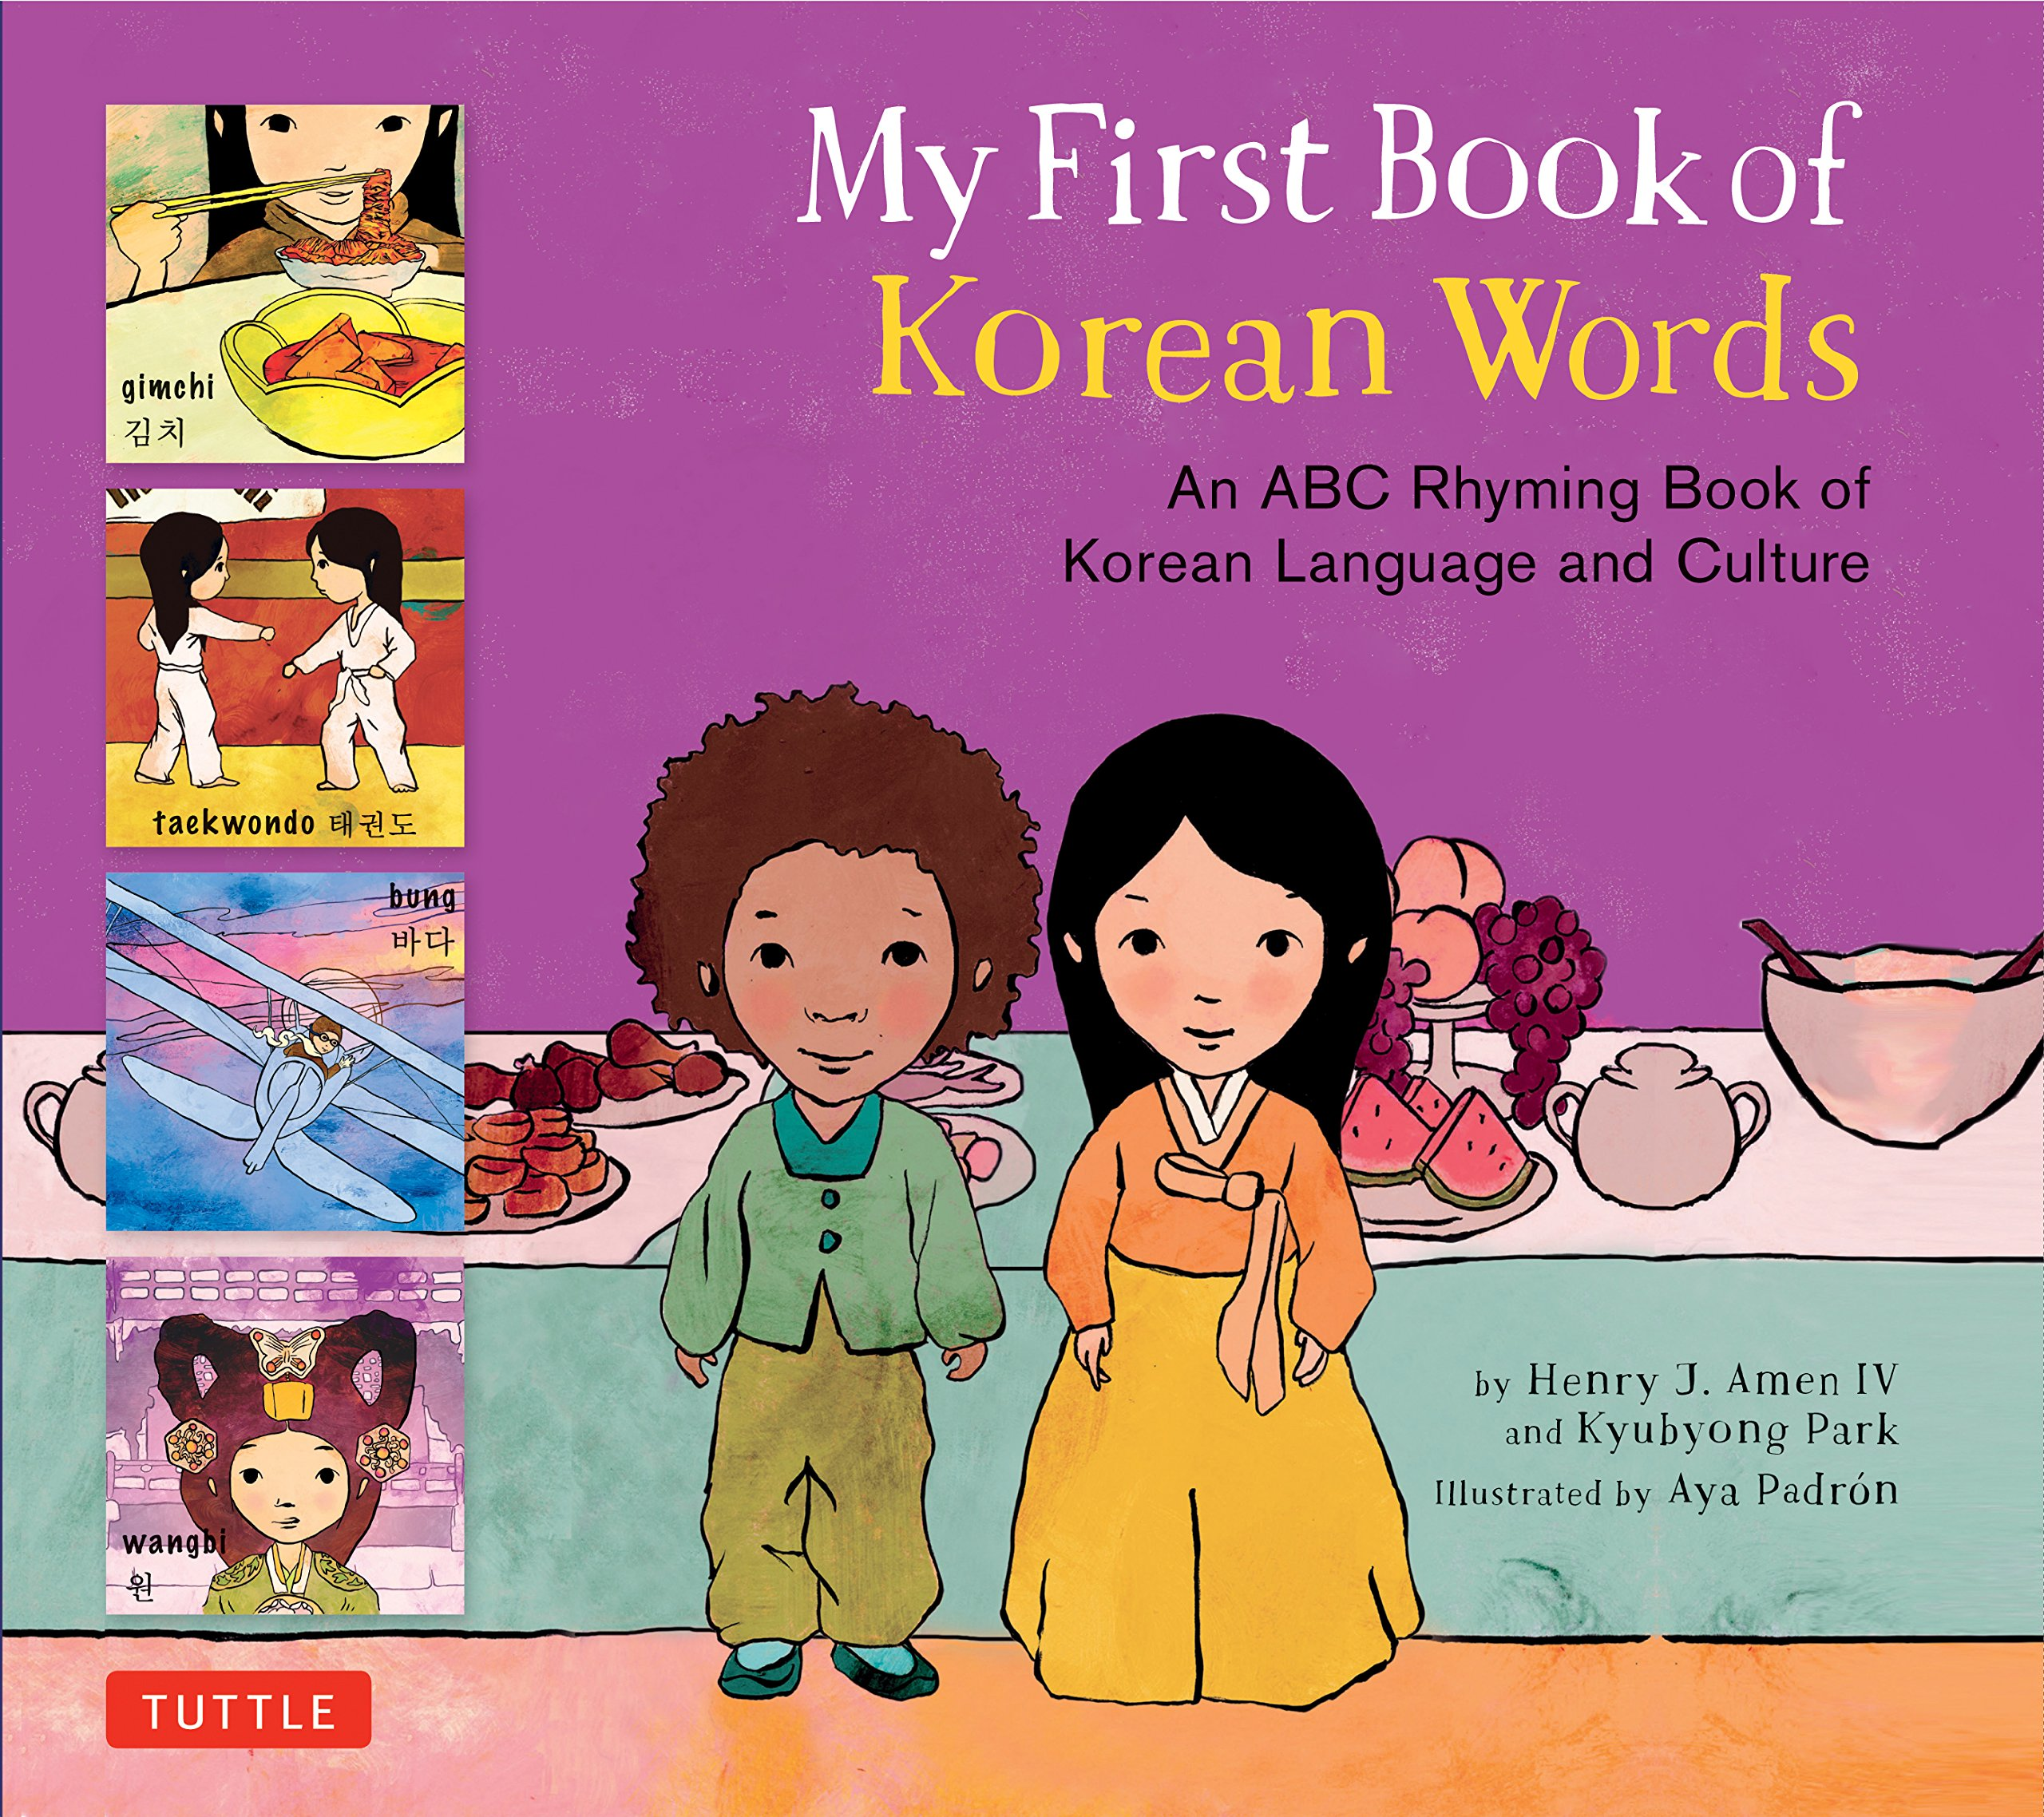 My first book of korean words an abc rhyming book of korean my first book of korean words an abc rhyming book of korean language and culture livros na amazon brasil 9780804849401 fandeluxe Image collections